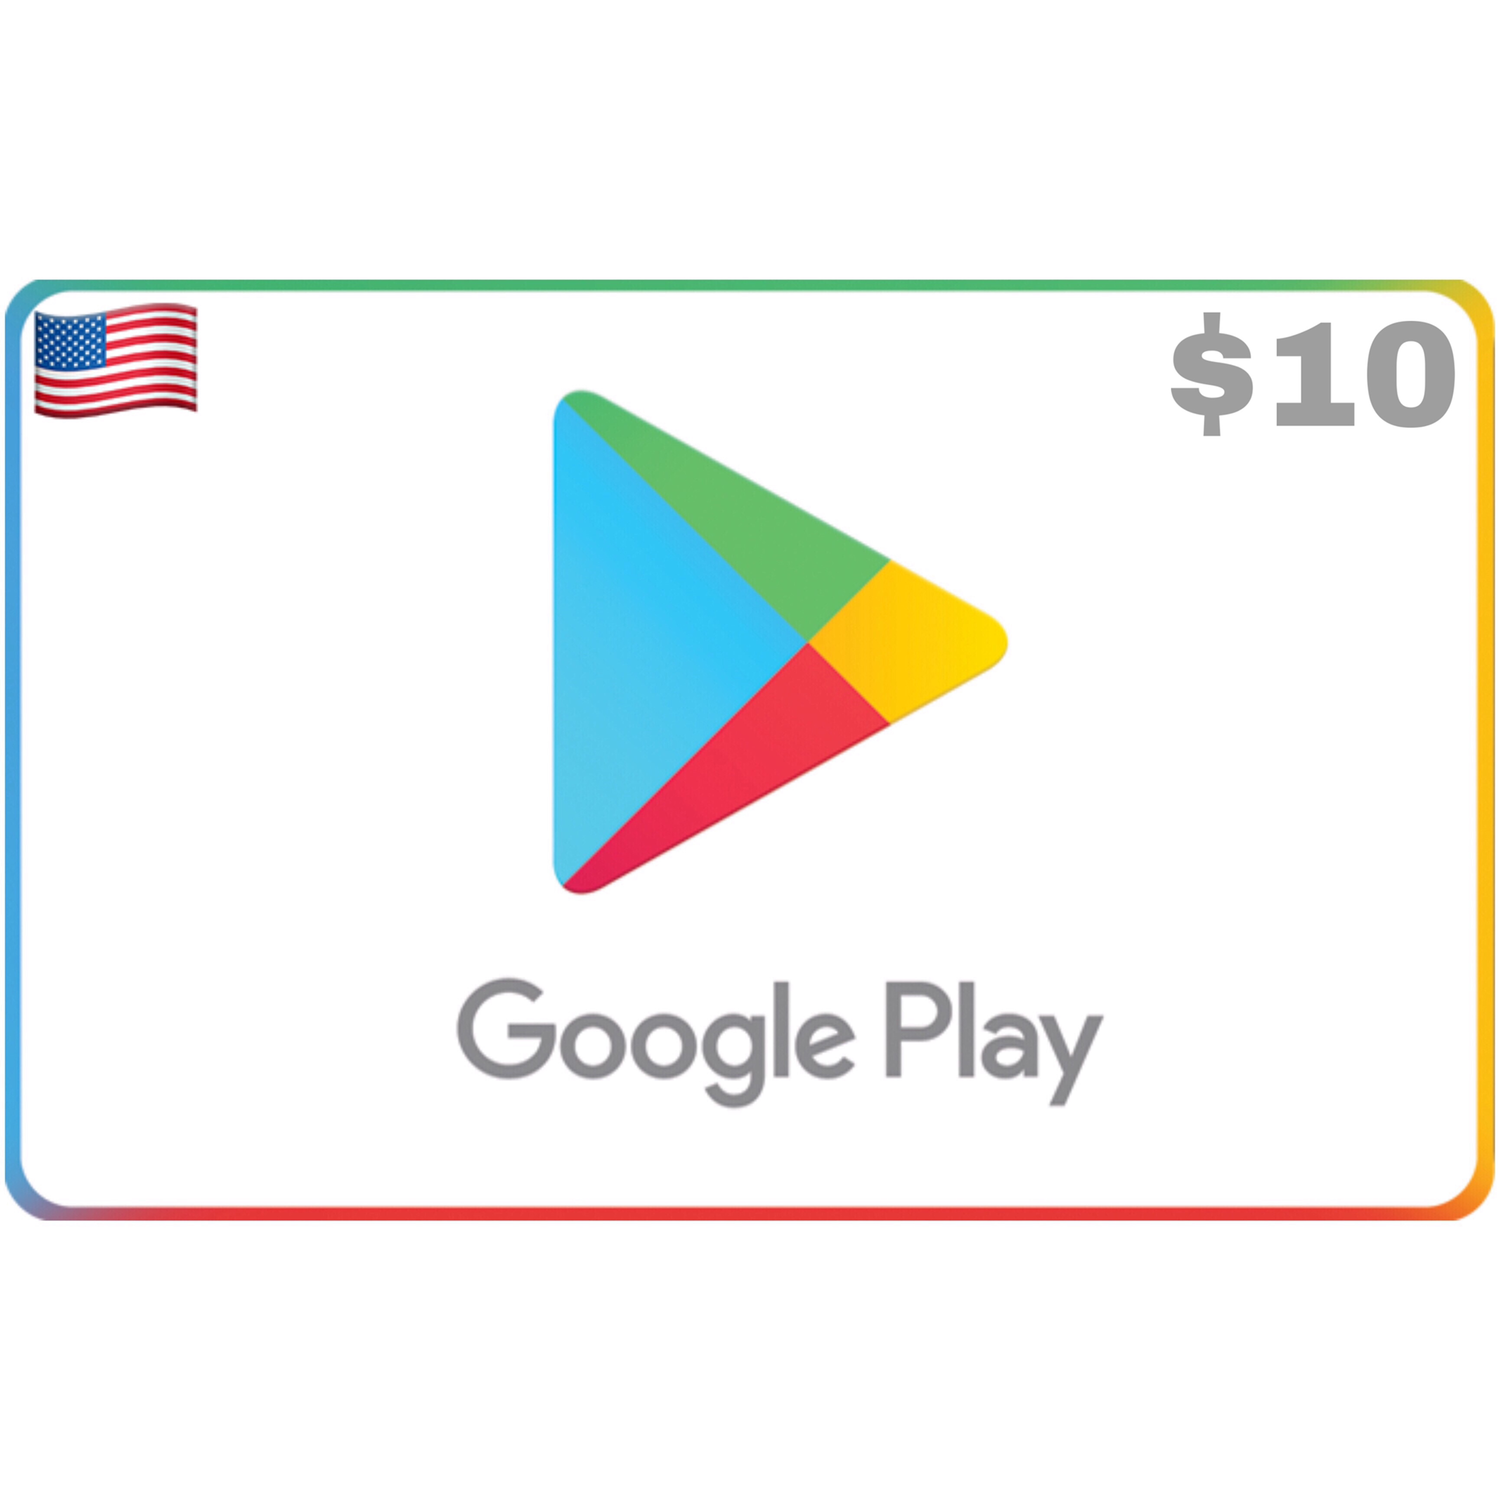 Google Play US USD $10